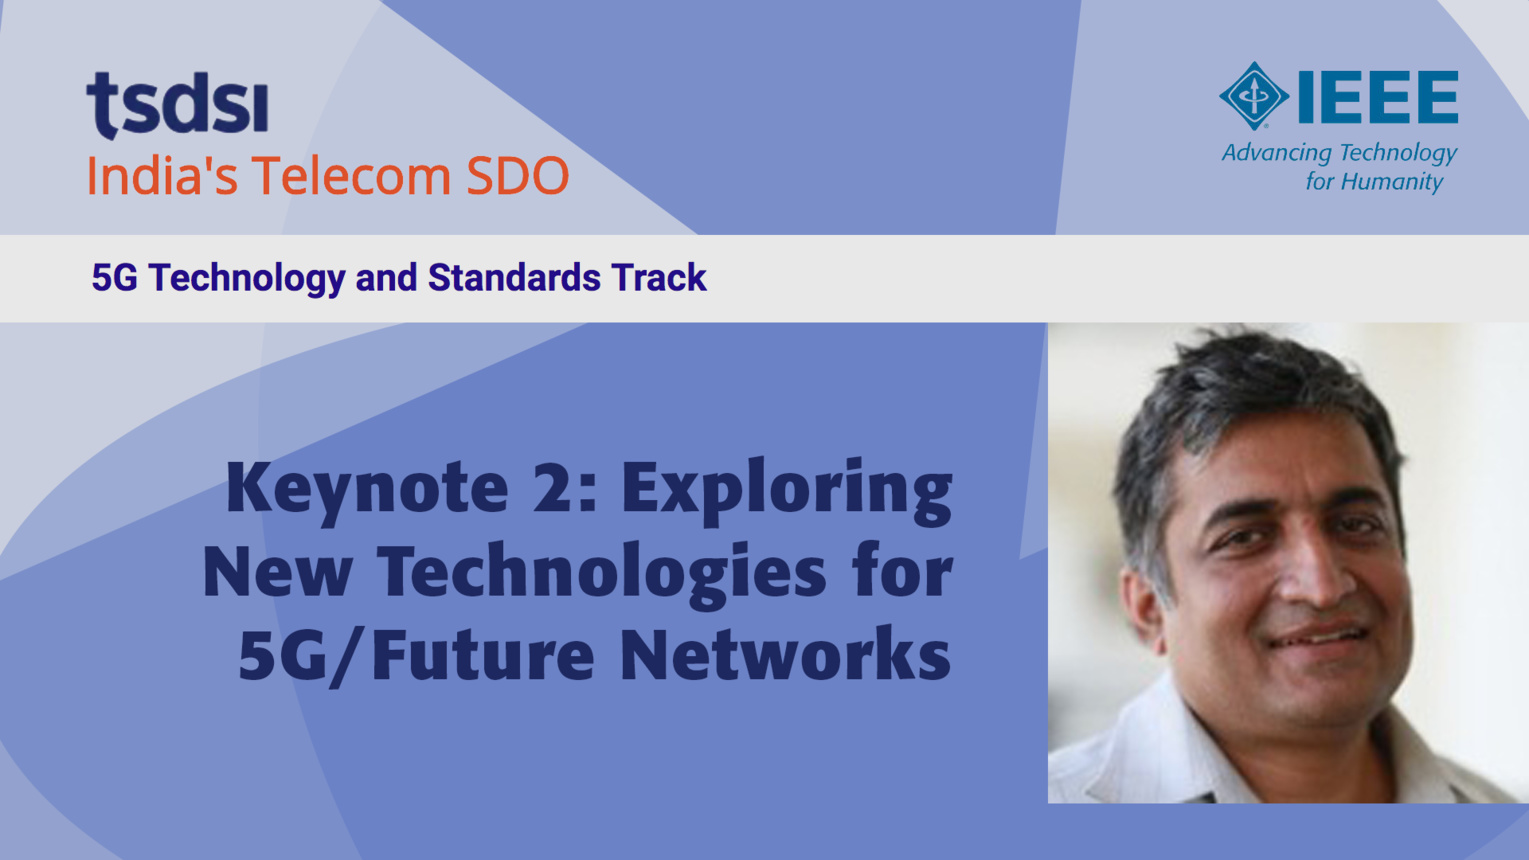 Keynote 2: Exploring New Technologies for 5G/Future Networks - Dilip Krishnaswamy - India Mobile Congress, 2018